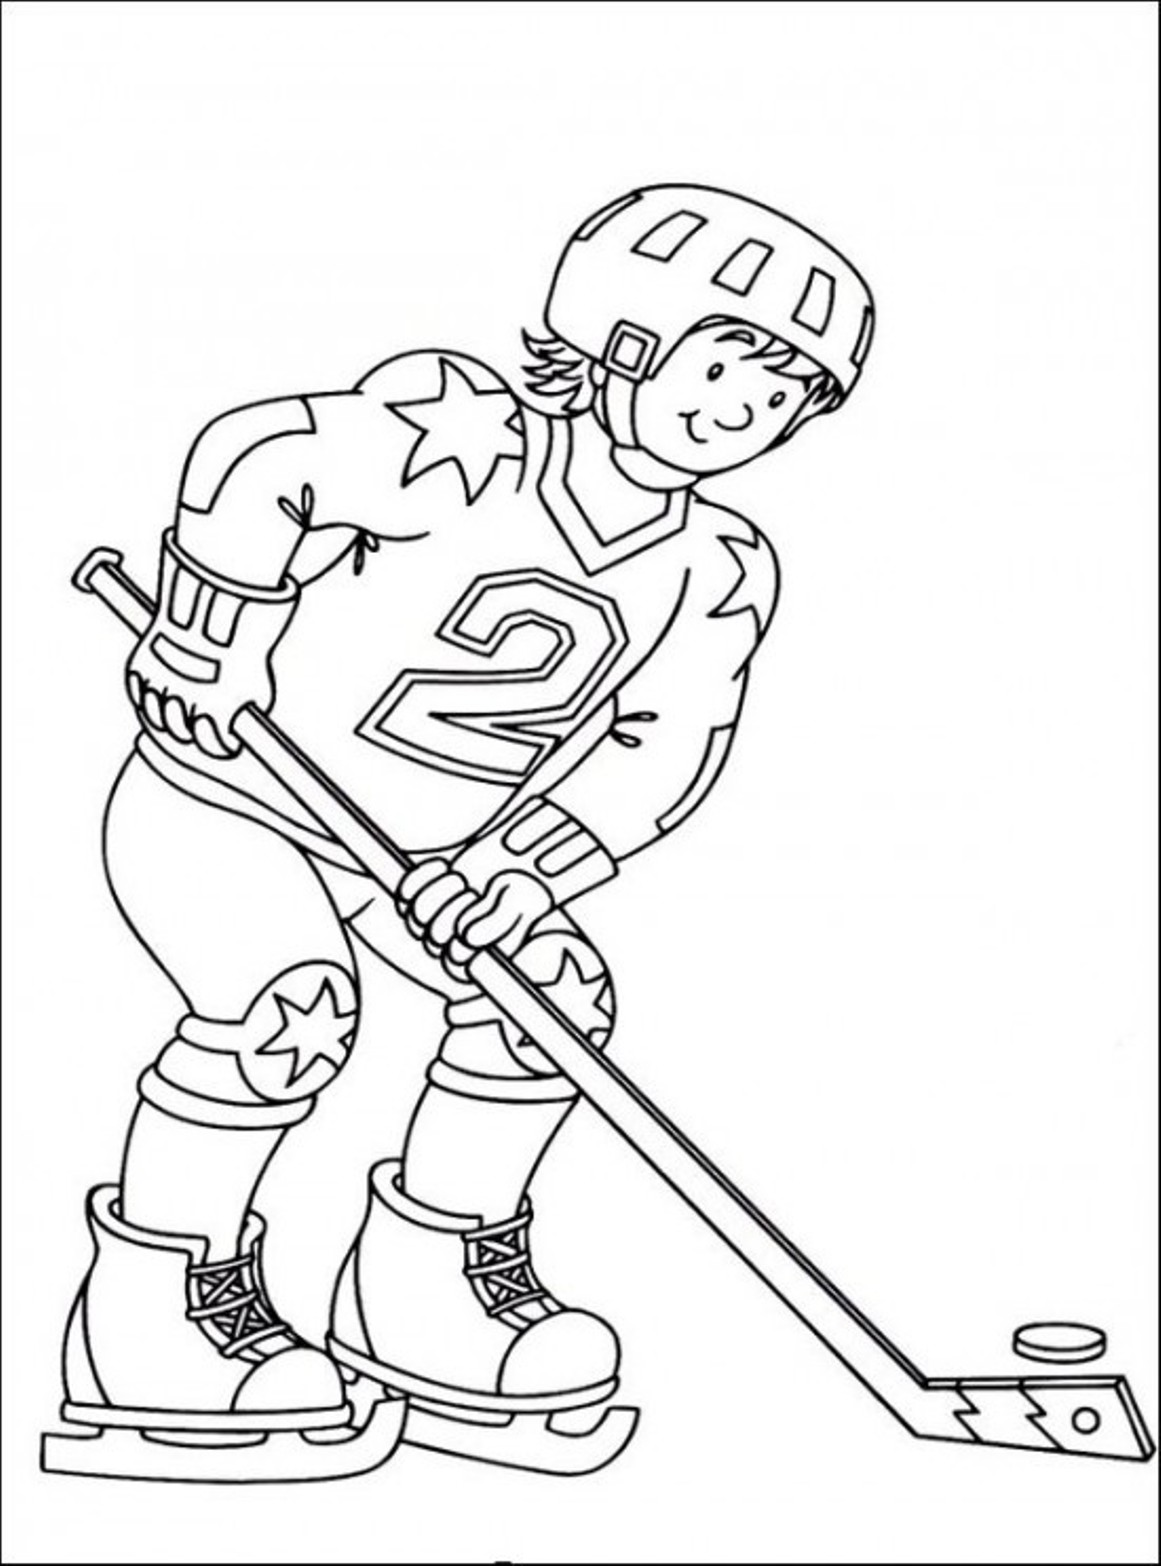 Hockey printable coloring pages for Hockey coloring pages printable